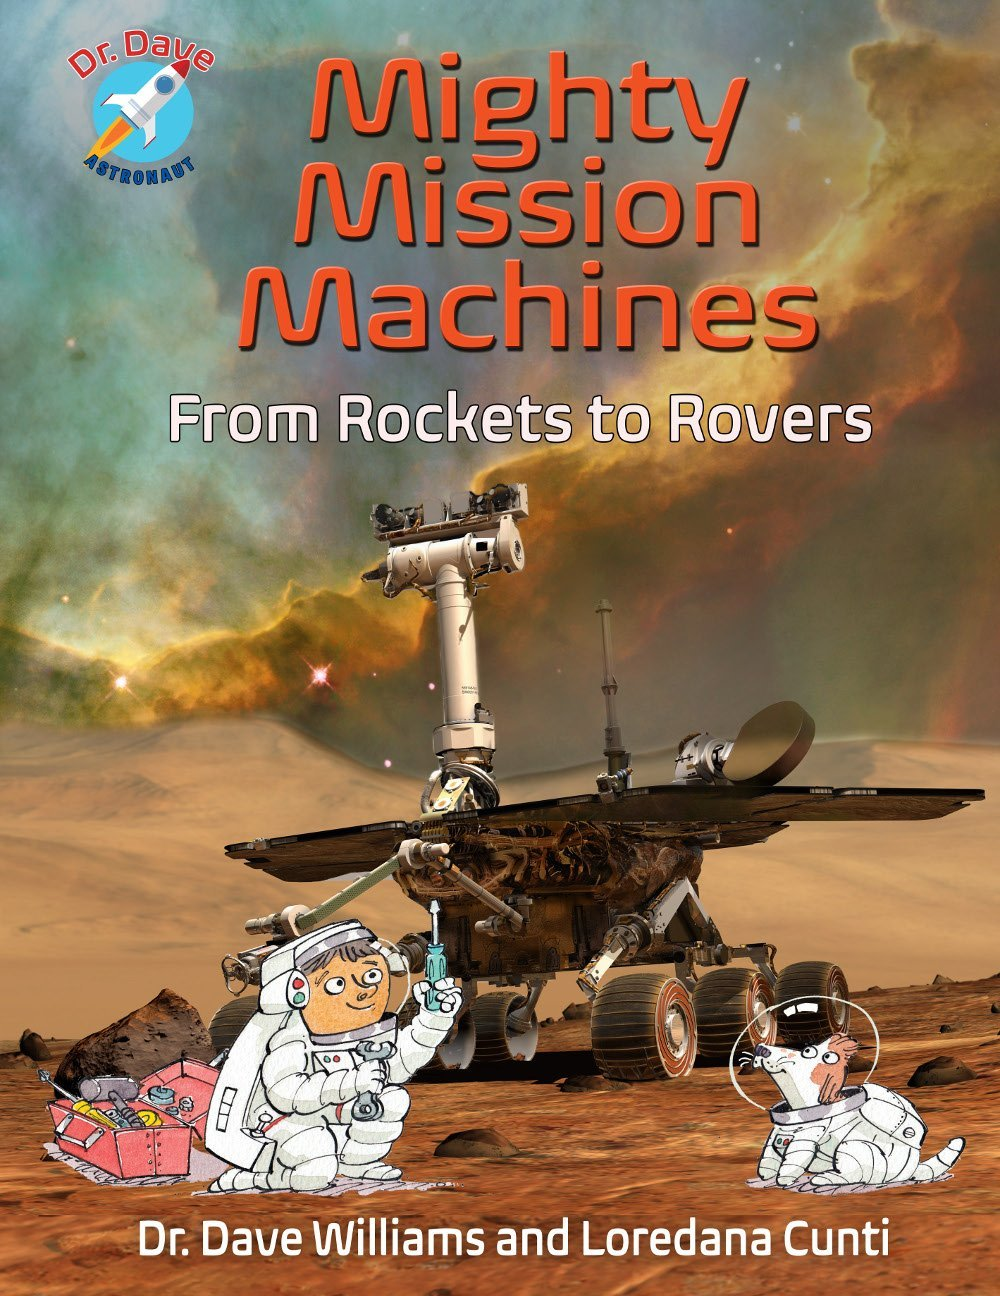 Mighty Mission Machines: From Rockets to Rovers (Dr. Dave, Astronaut) by Annick Press (Image #1)